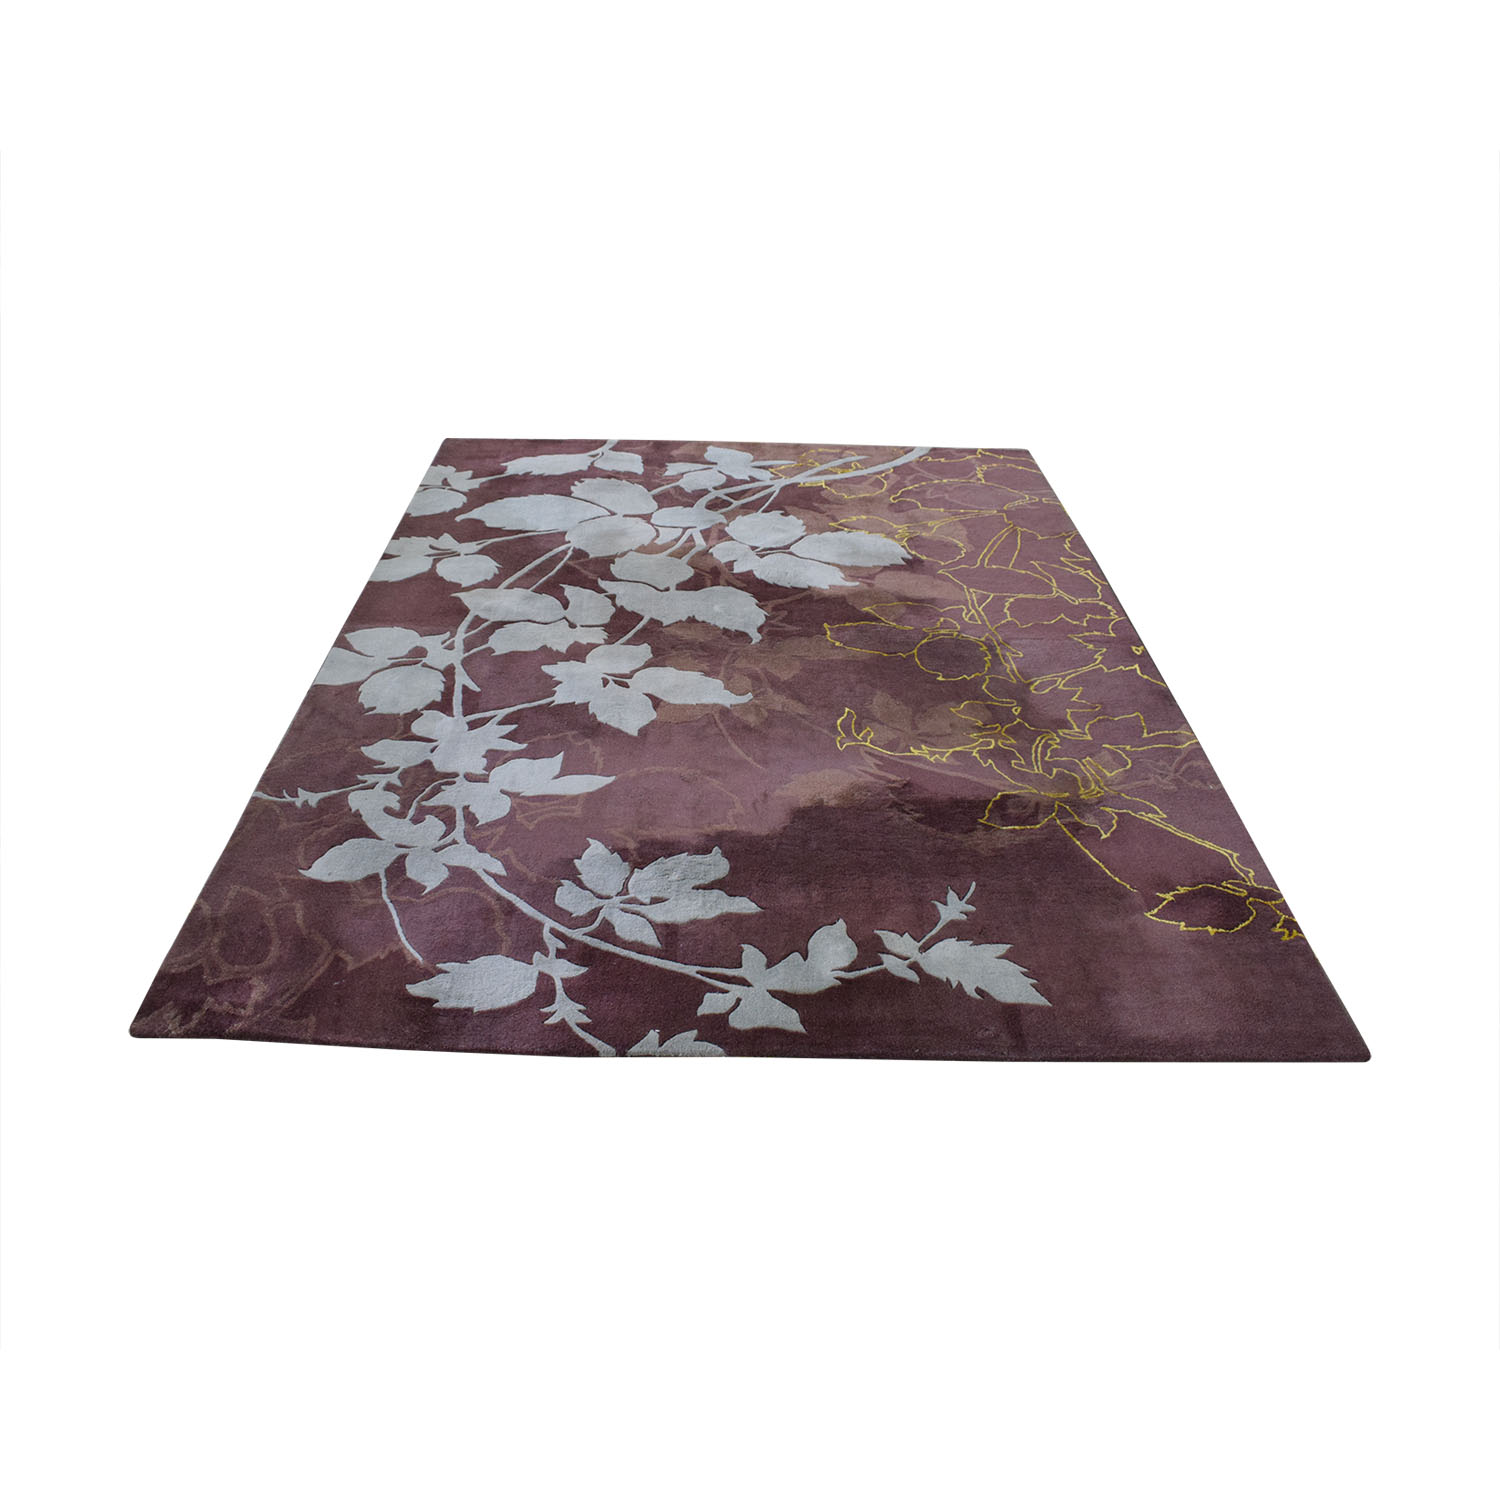 Home Decorators Collection Arcadian Area Rug / Decor